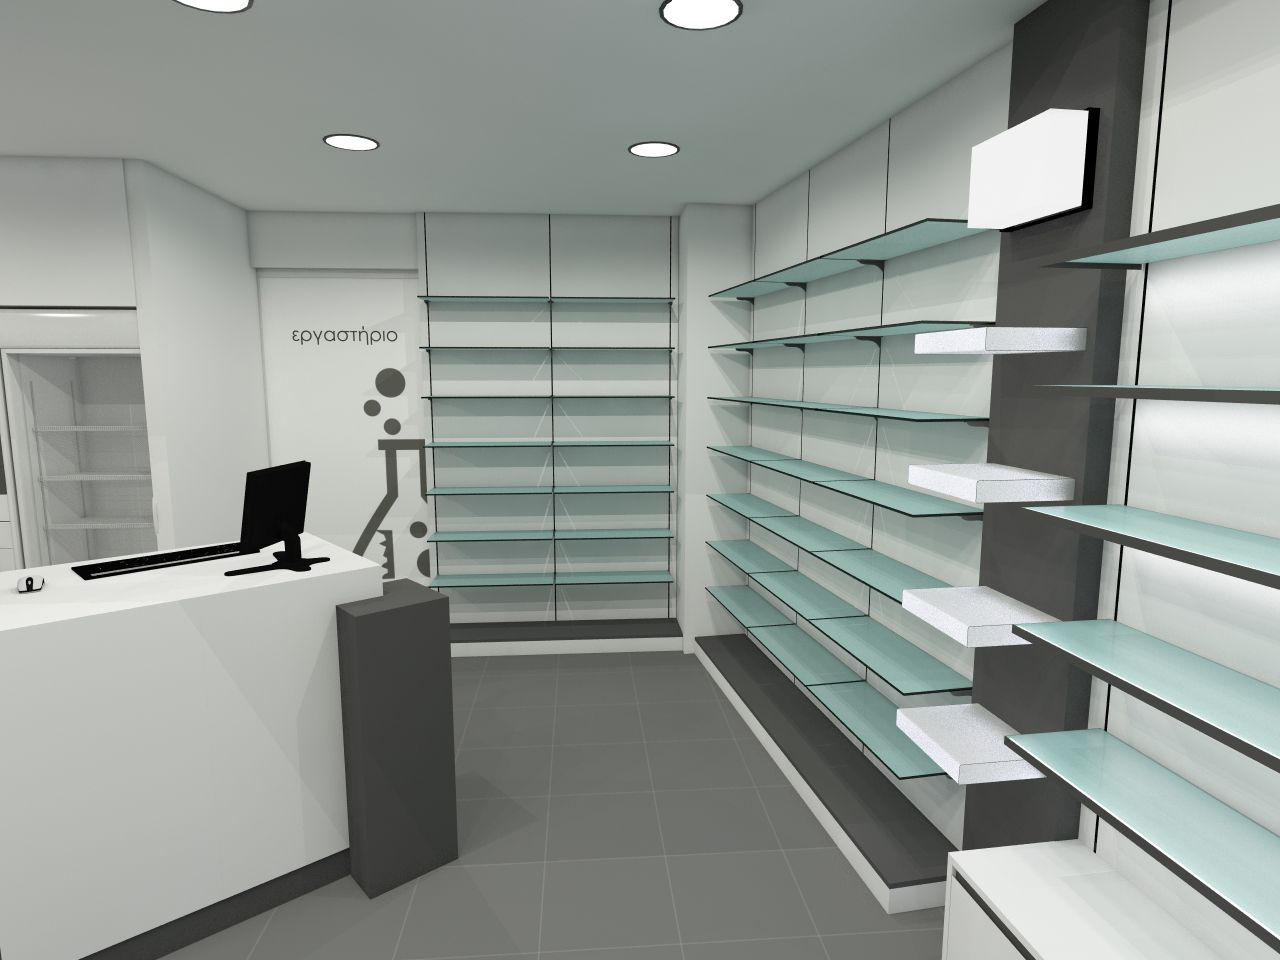 greece pharmacy design | retail design | store design